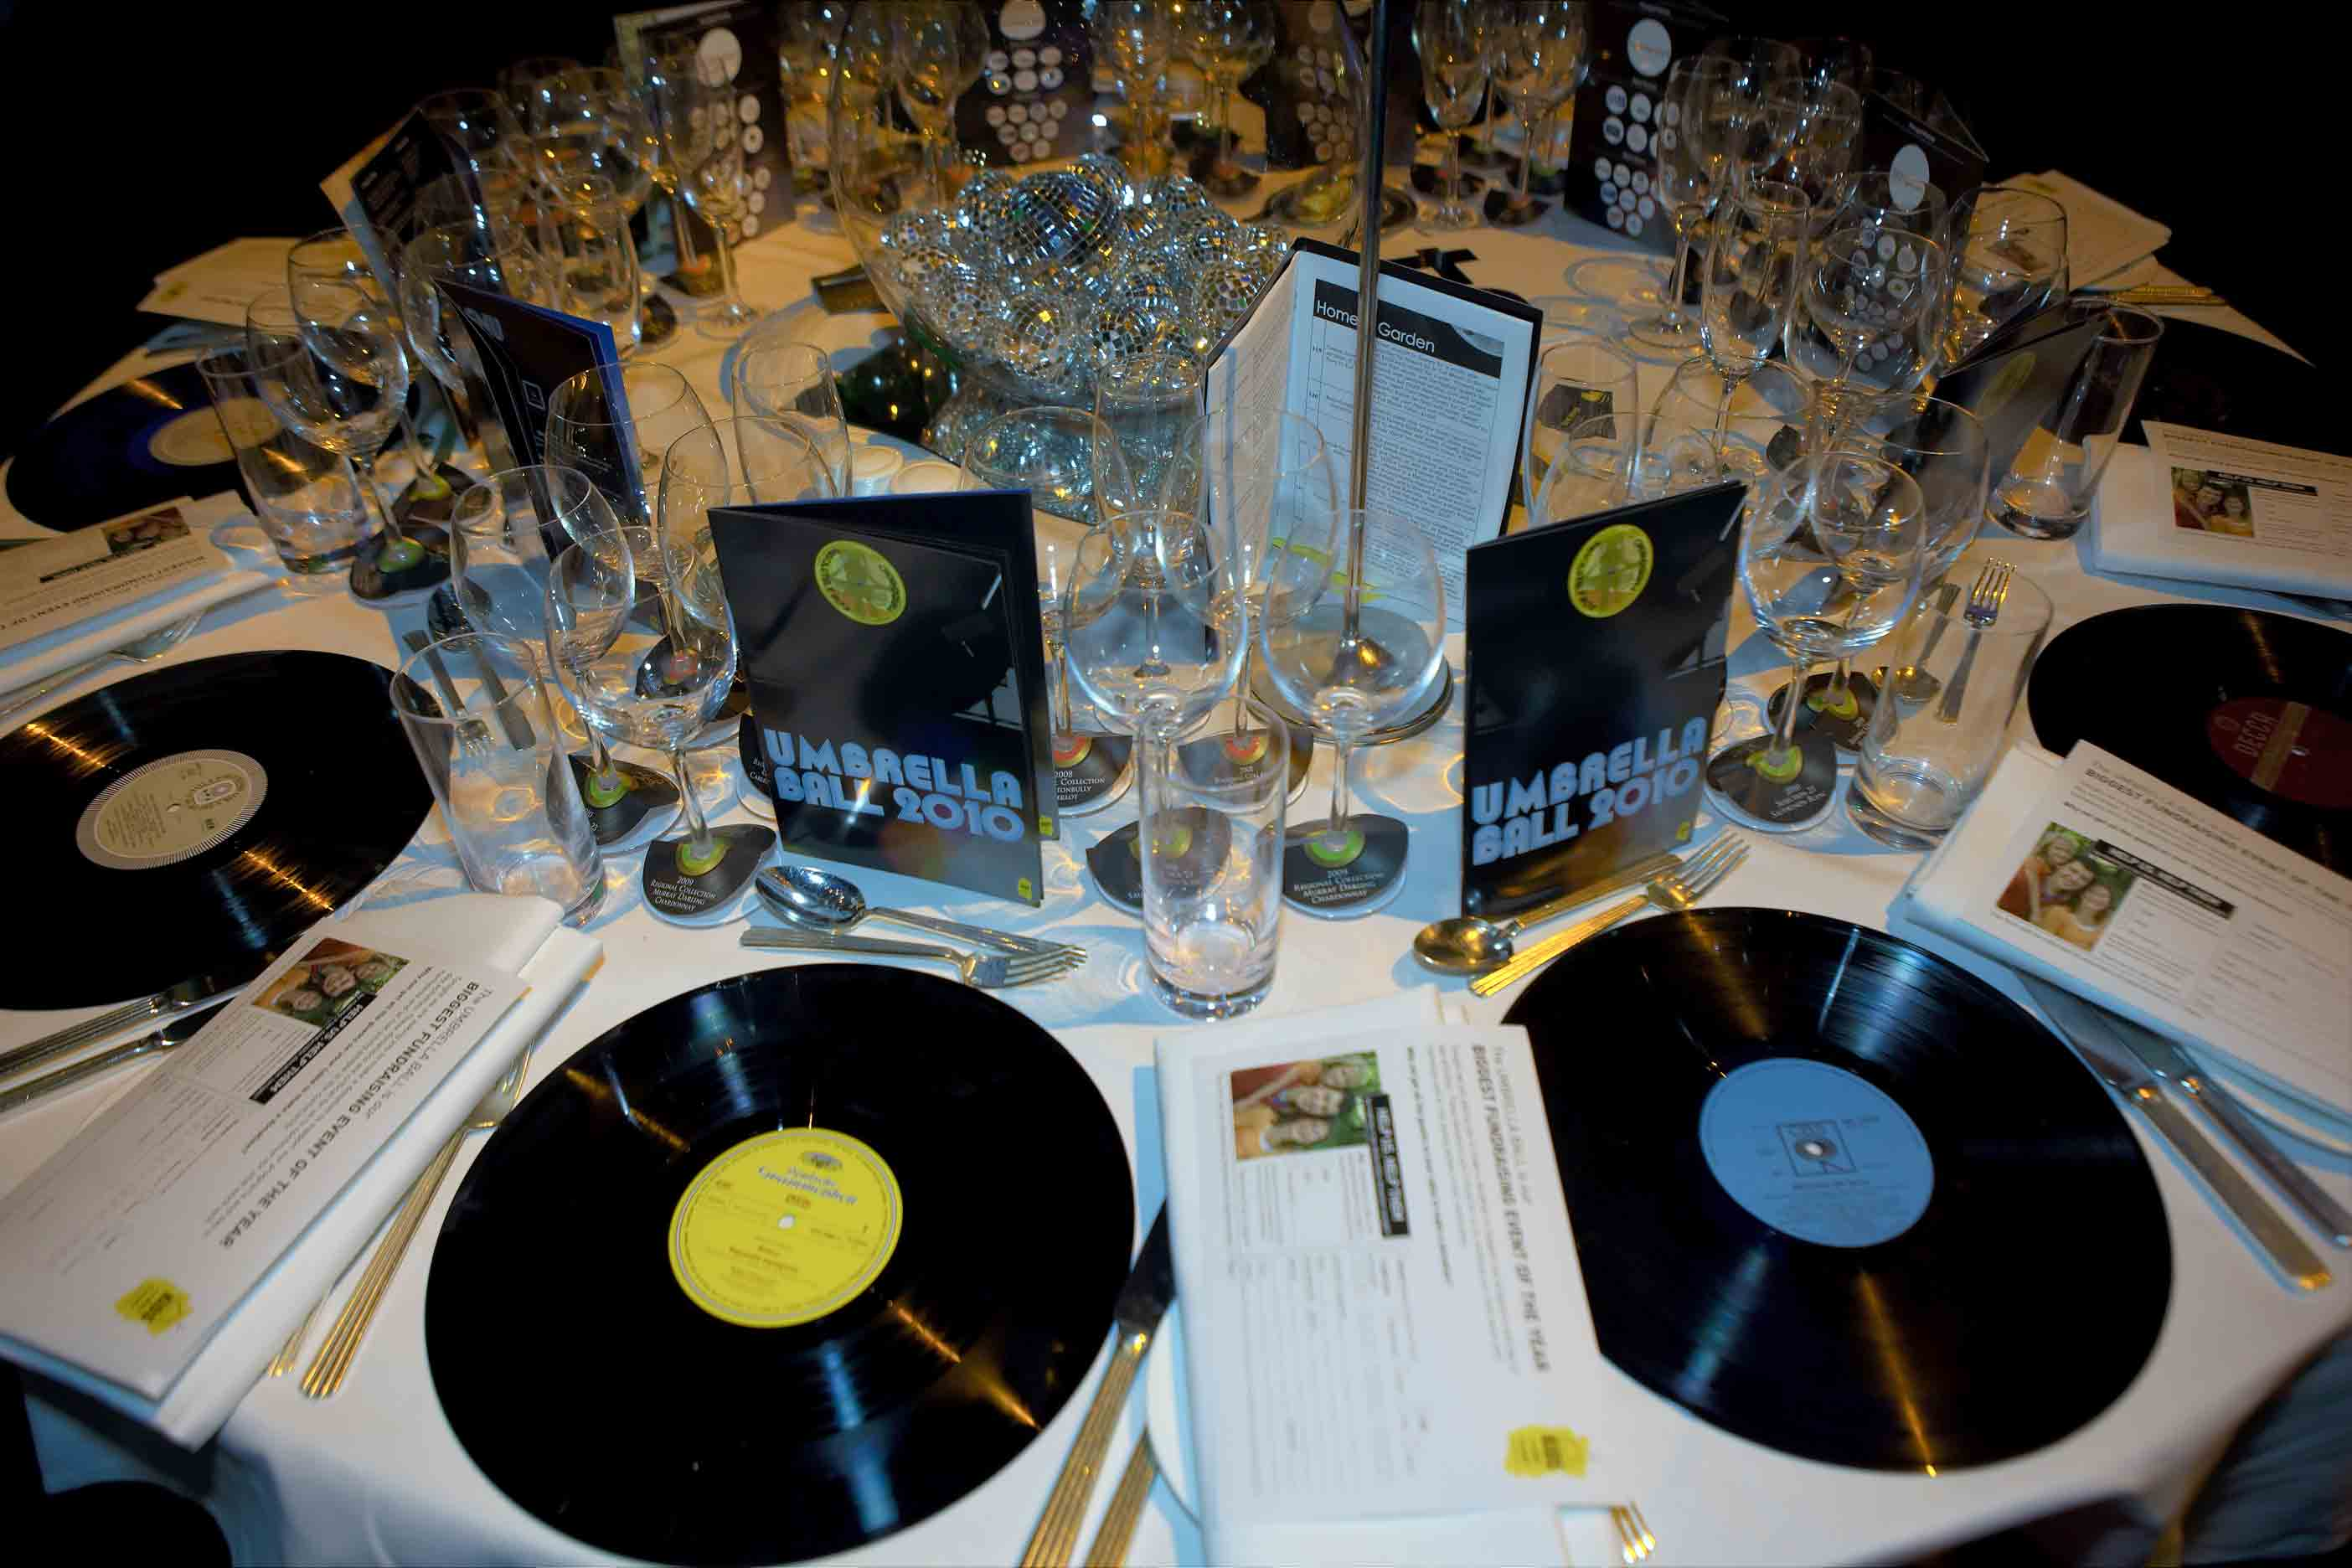 Upcycled record place mats